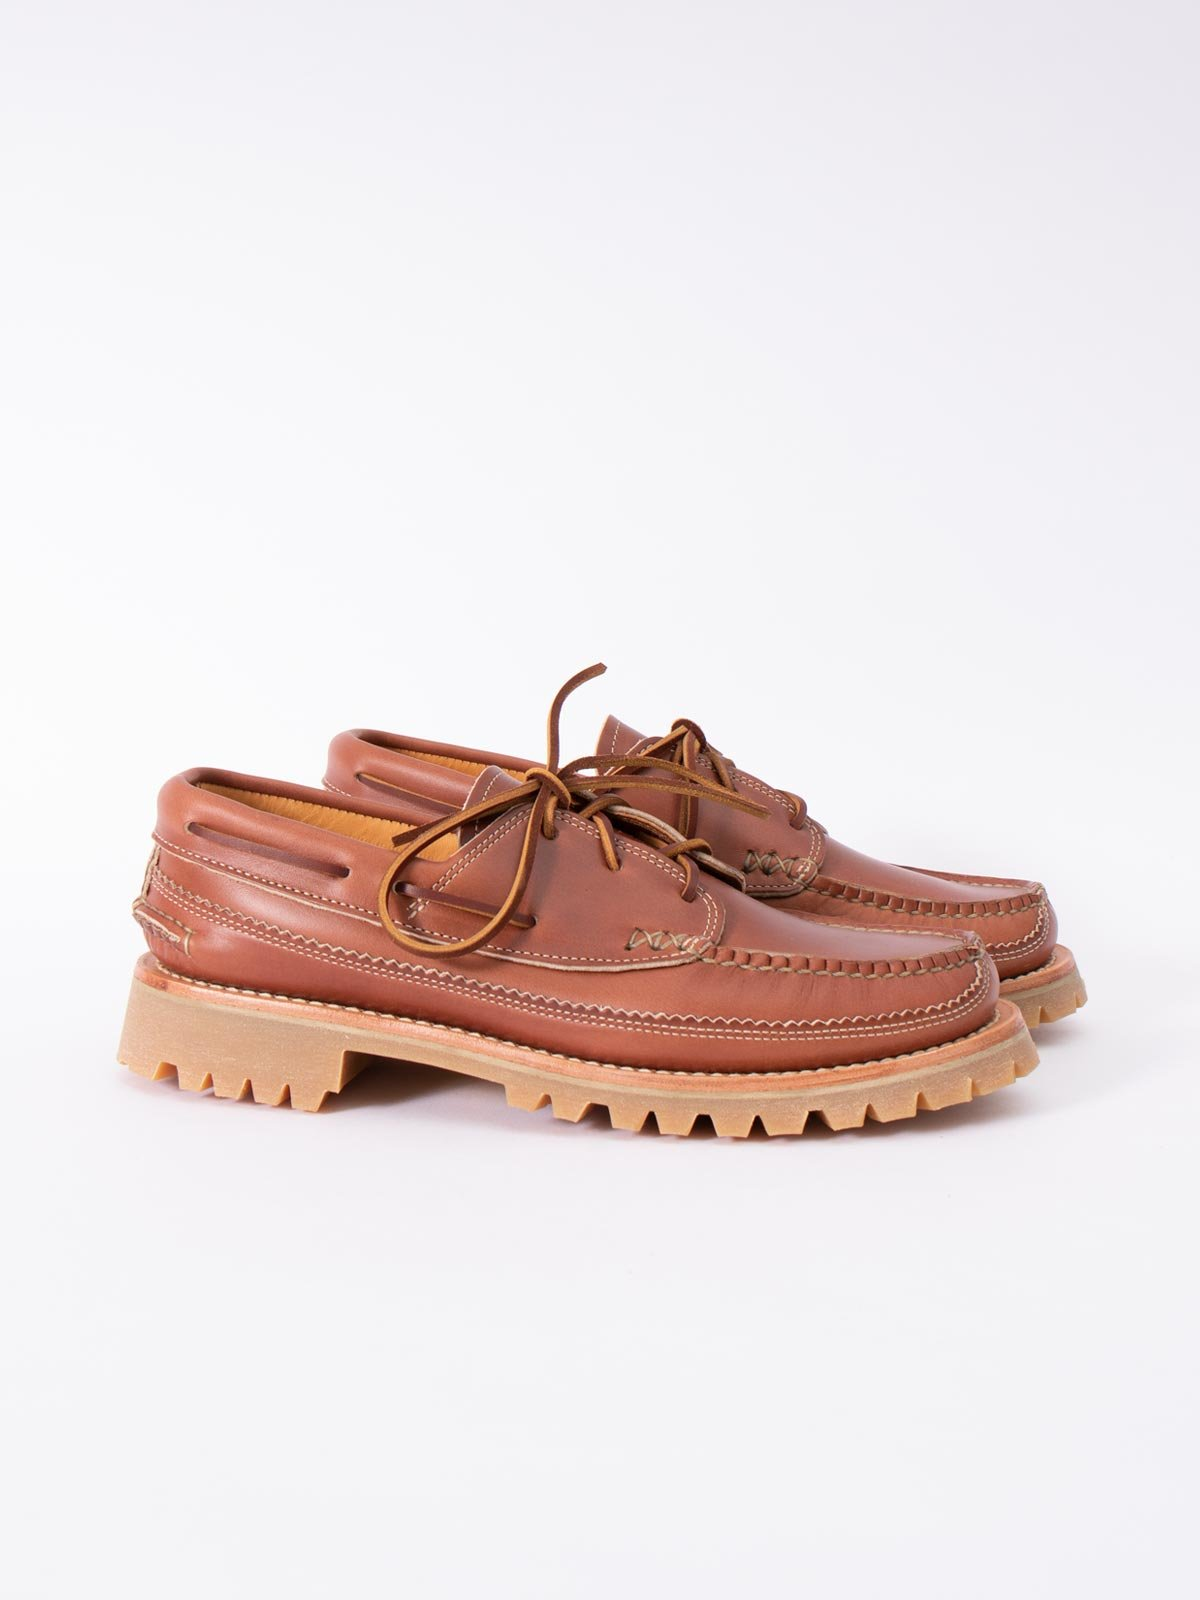 C WHISKEY DB BOAT SHOE W/ LUG SOLE EXCLUSIVE - Image 1